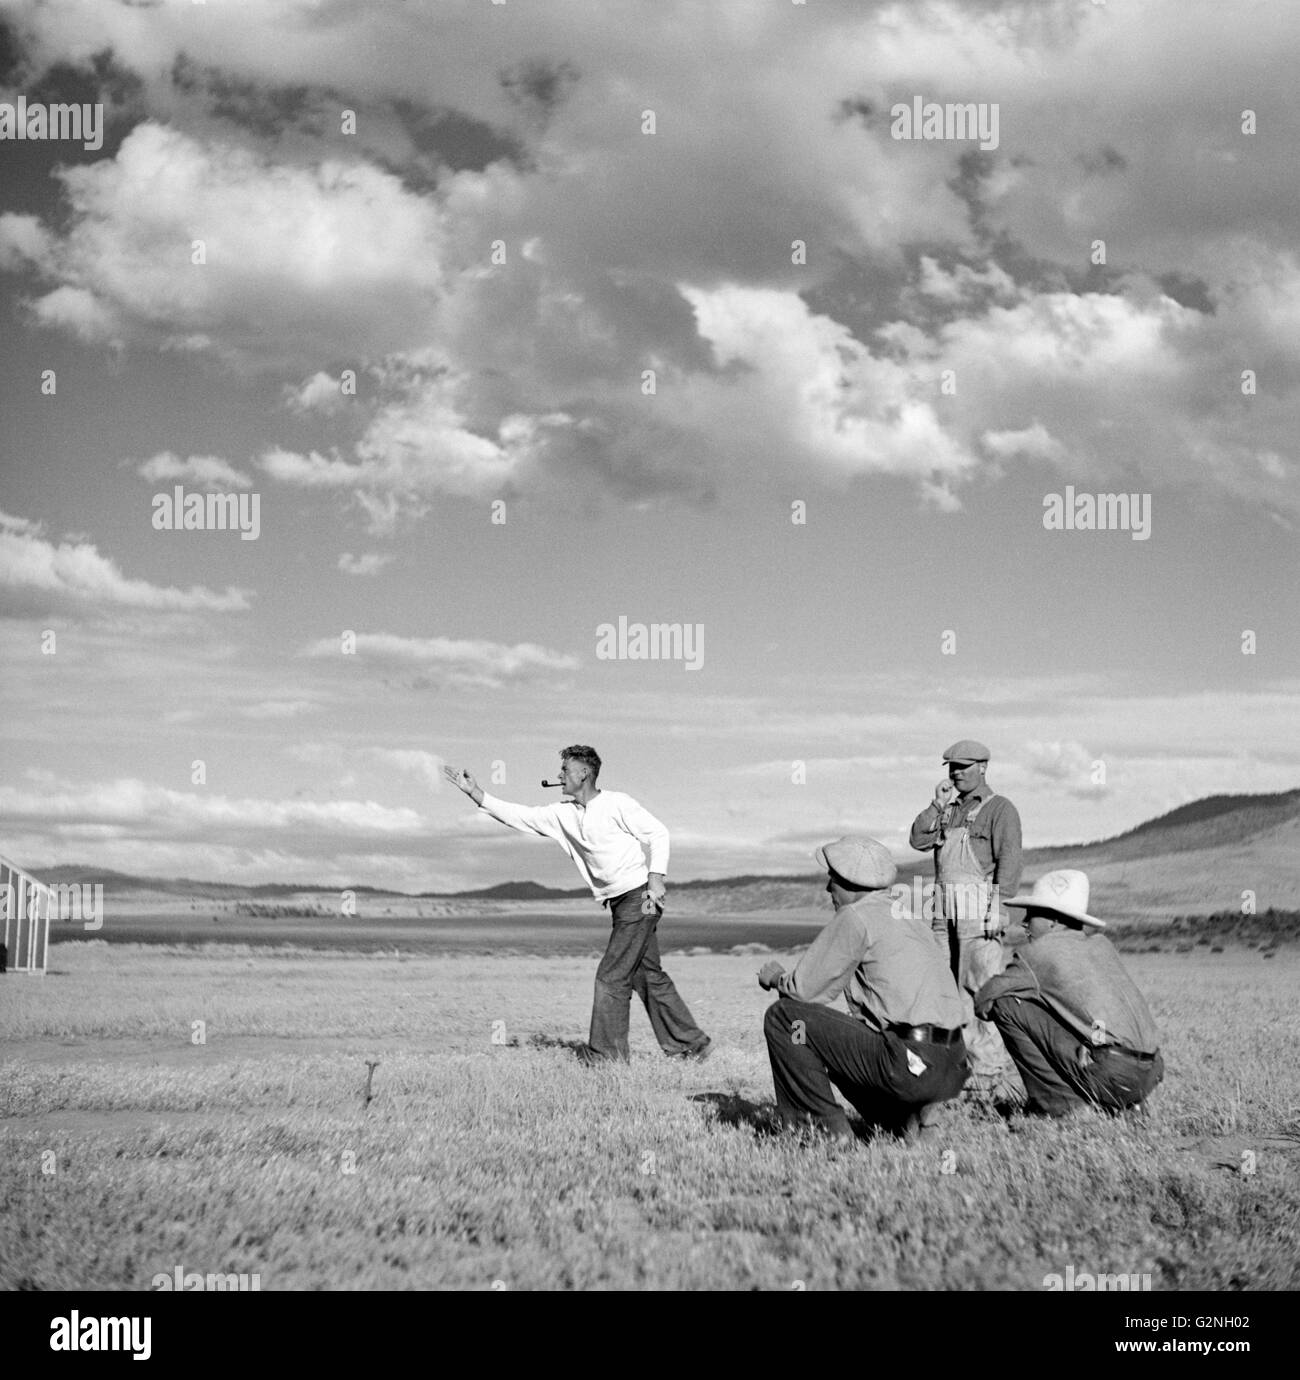 Man Pitching Horseshoes at Resettlement Administration Camp, Madras, Oregon, USA, Arthur Rothstein for Farm Security - Stock Image